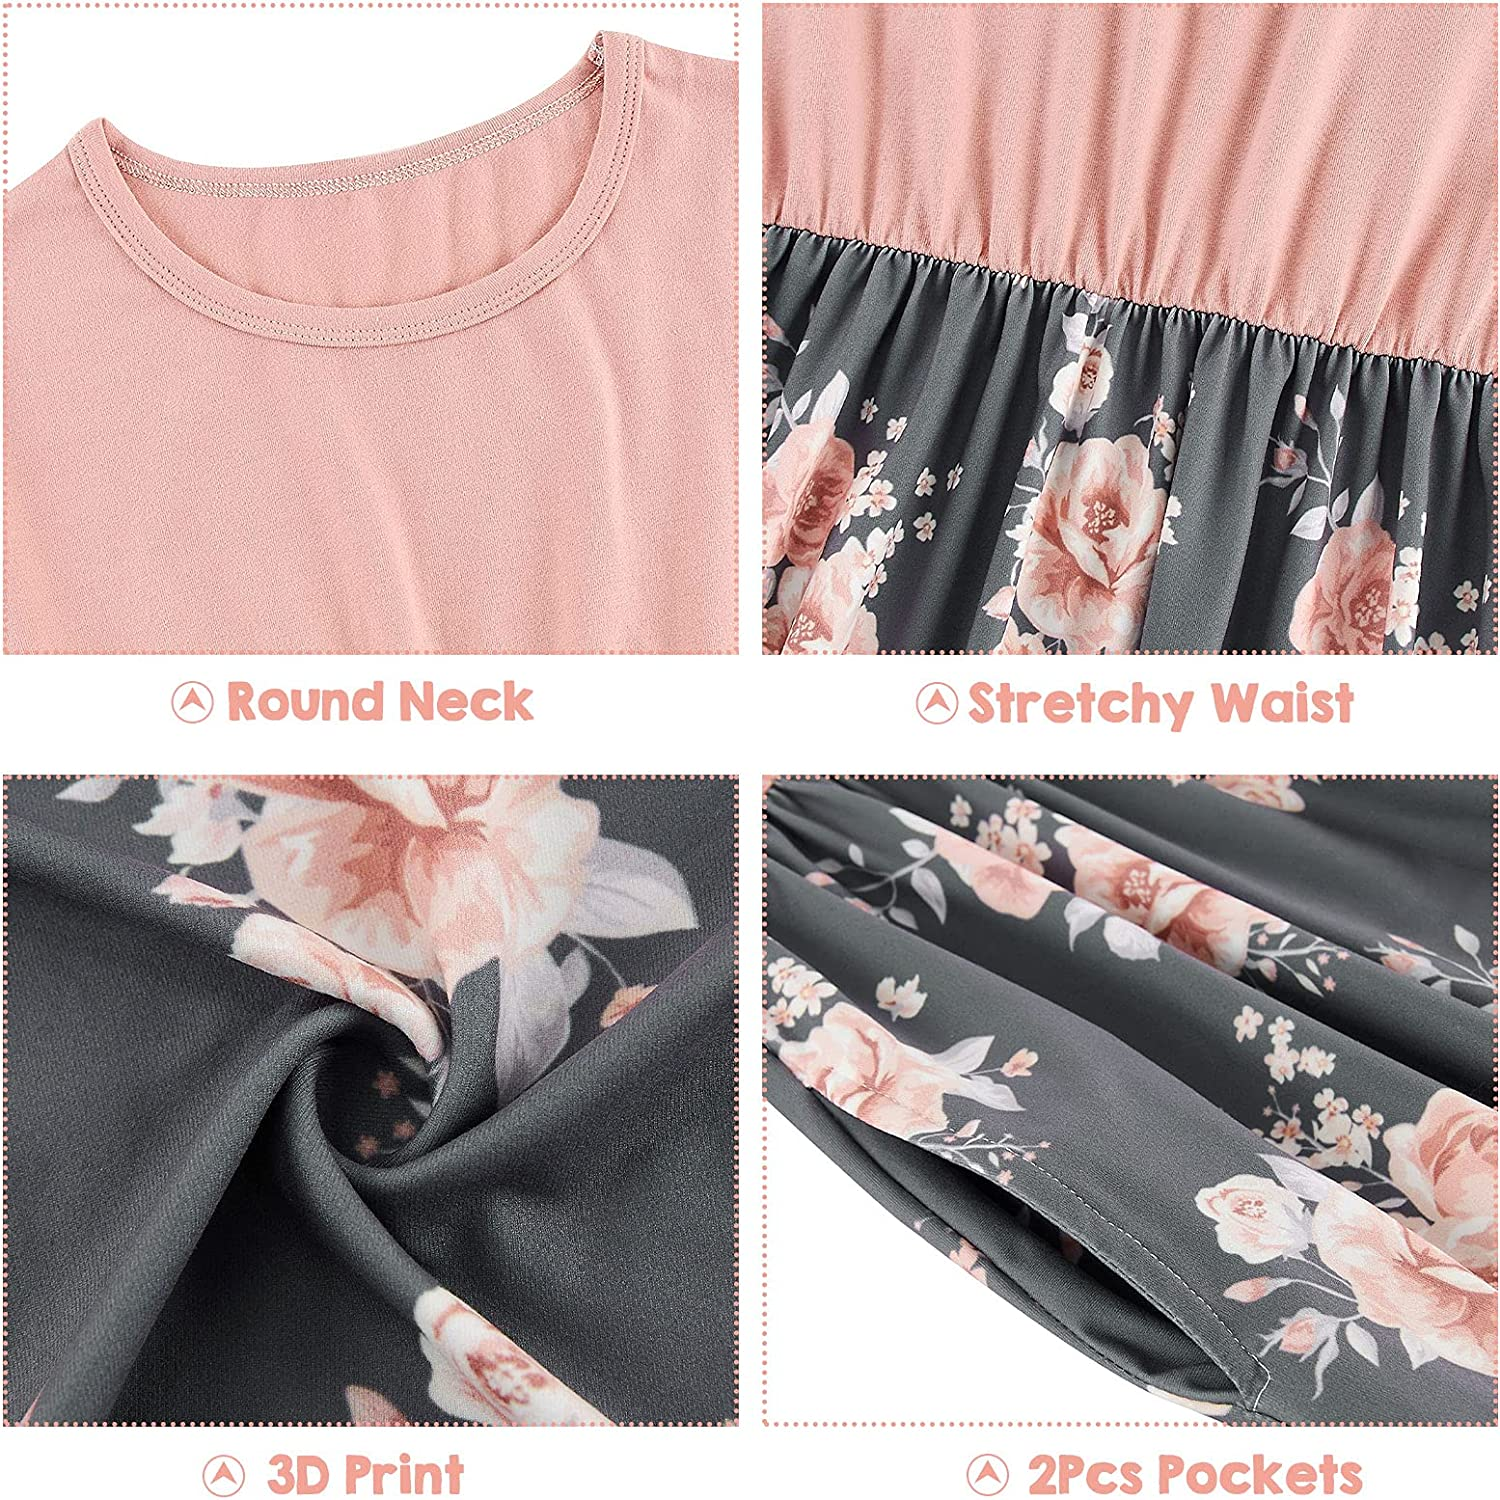 UNICOMIDEA Girls Maxi Dress Fashion Long Dresses for Kids Ankle Dresses with Pockets for 6-13 Years Old